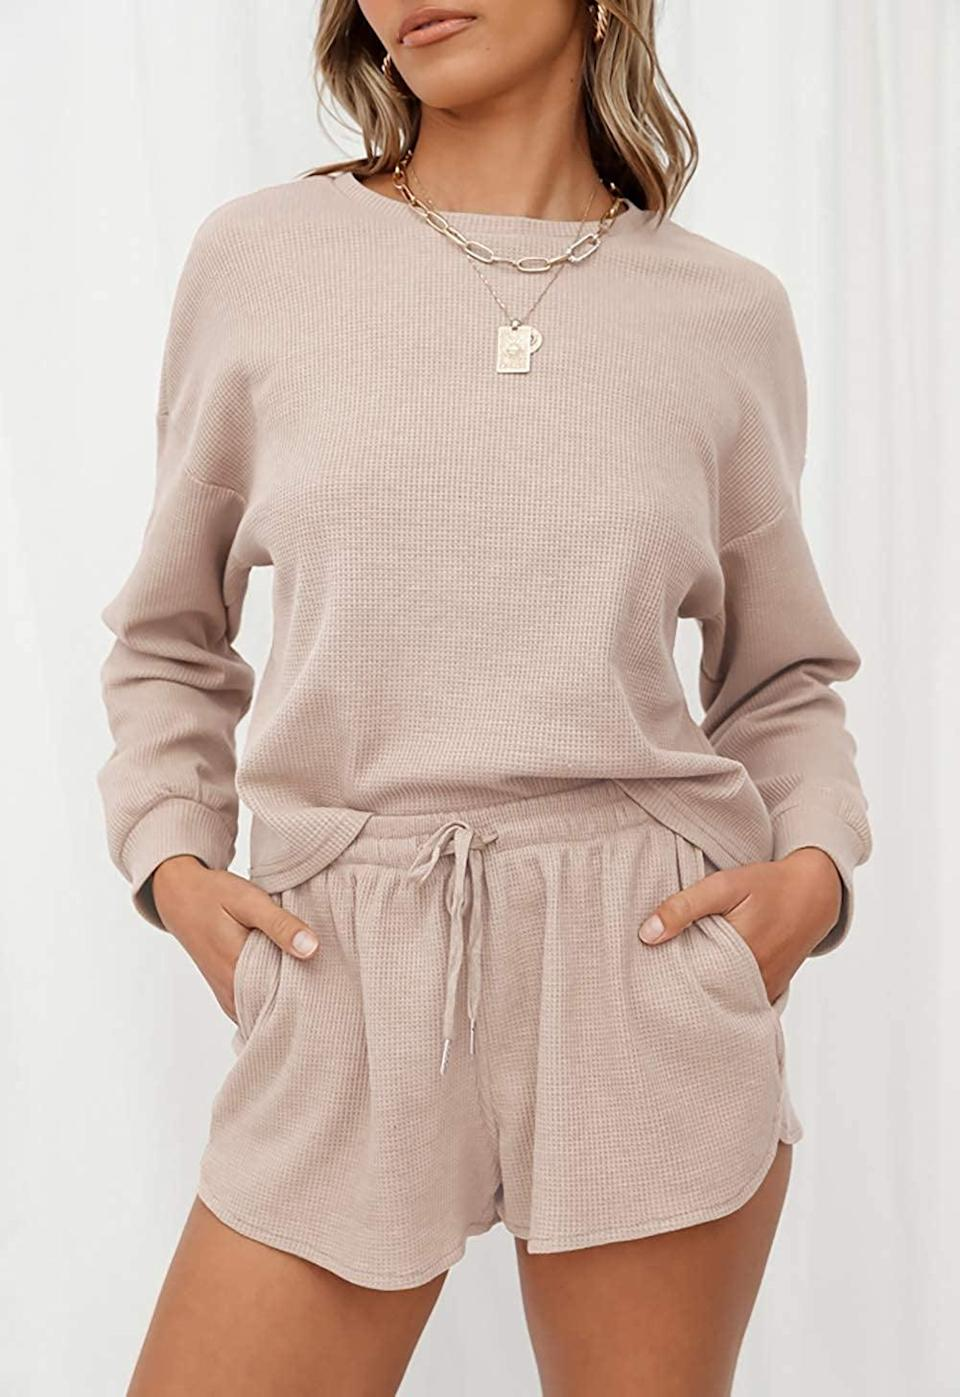 <p>This <span>Zesica Top and Shorts Lounge Set With Pockets</span> ($26-$30) is perfection.</p>